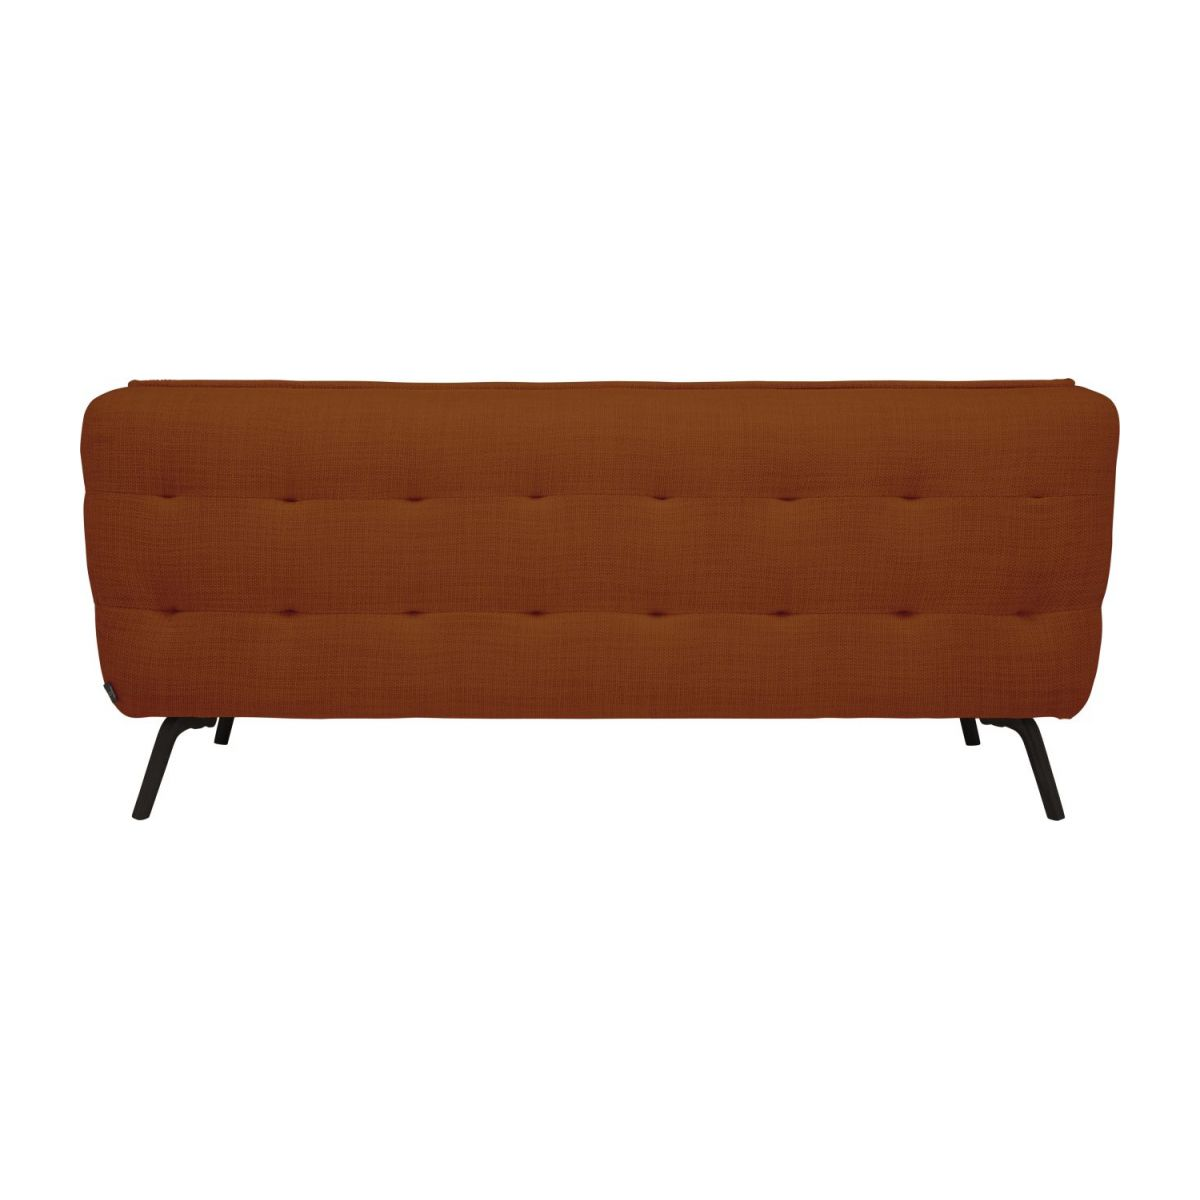 2 seater sofa in Fasoli fabric, warm red rock and dark legs n°2